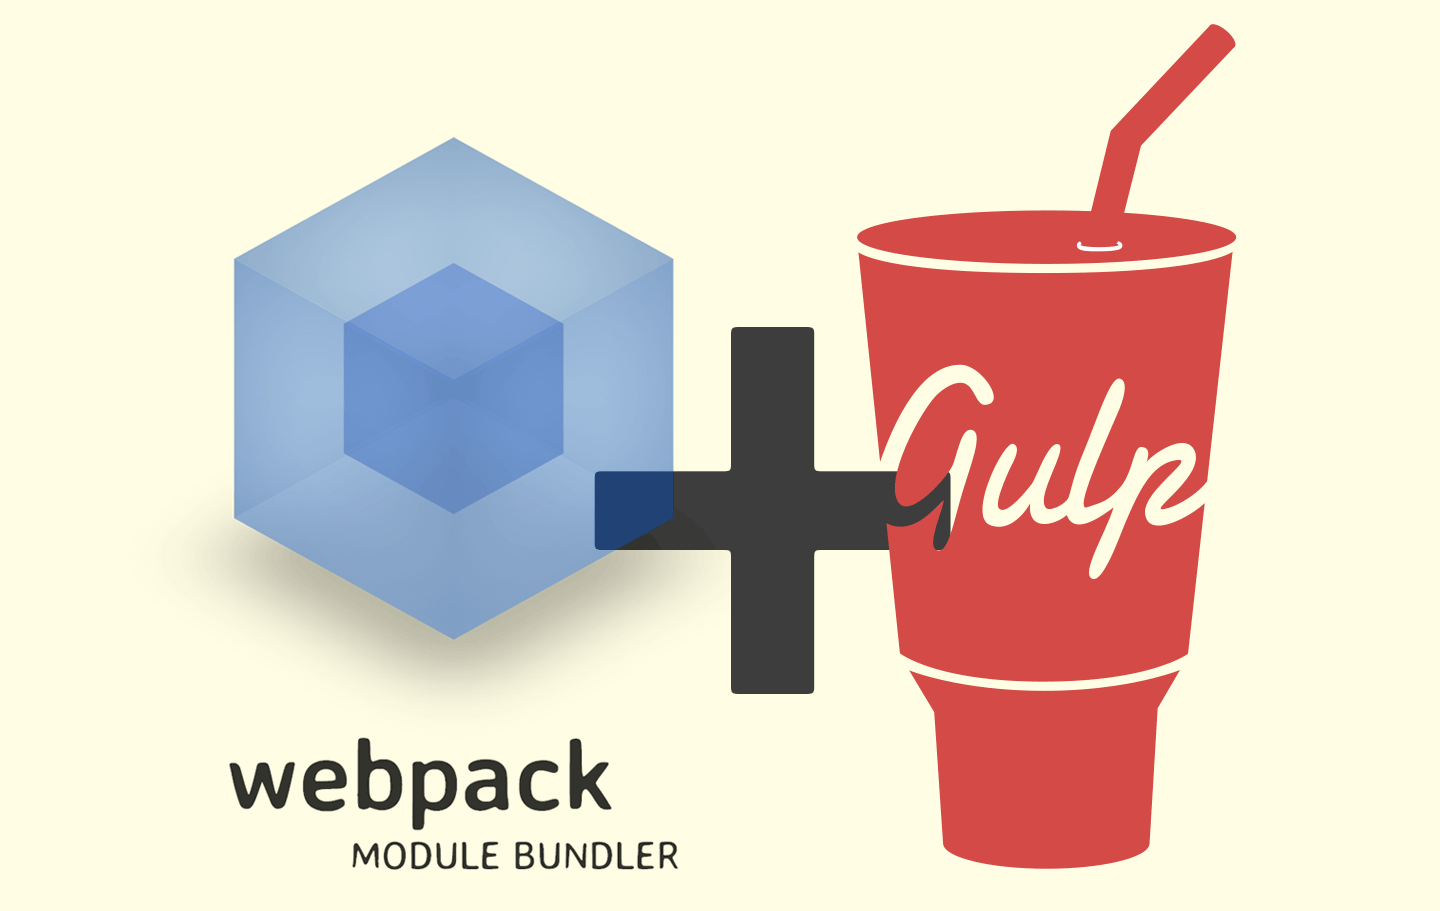 Combine Webpack with Gulp 4 | CSS-Tricks